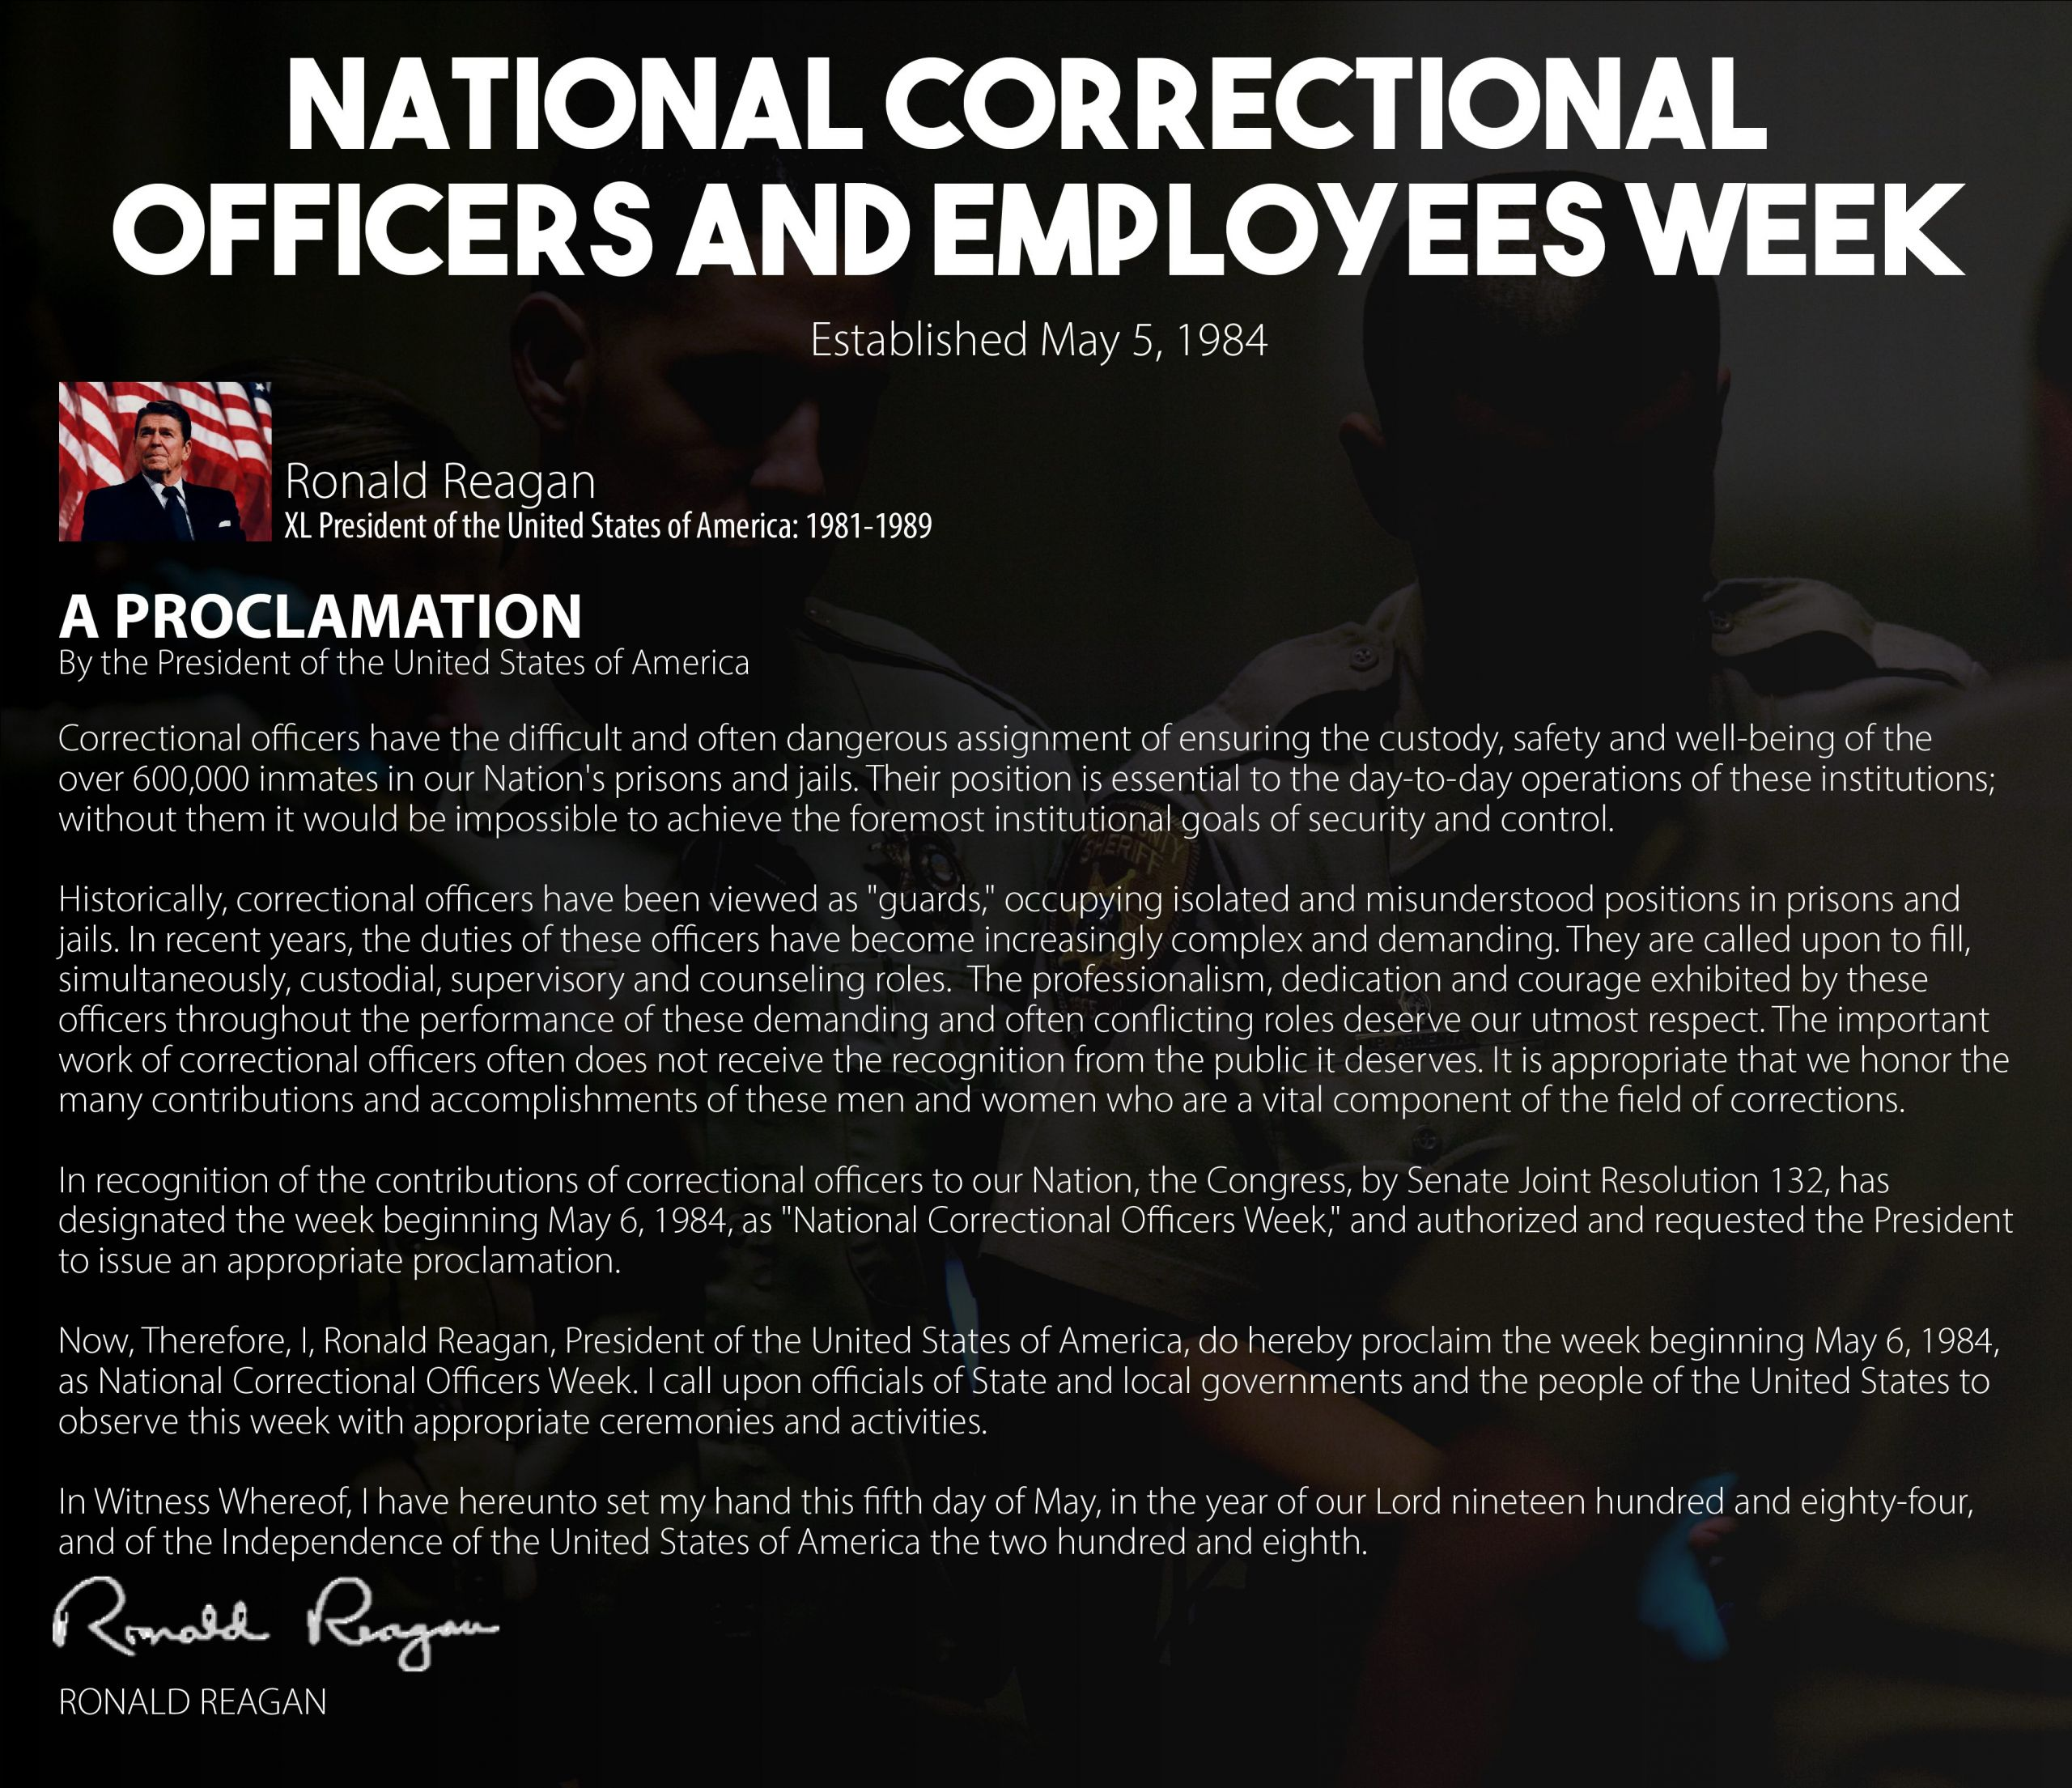 National Correctional Officers and Employees Week